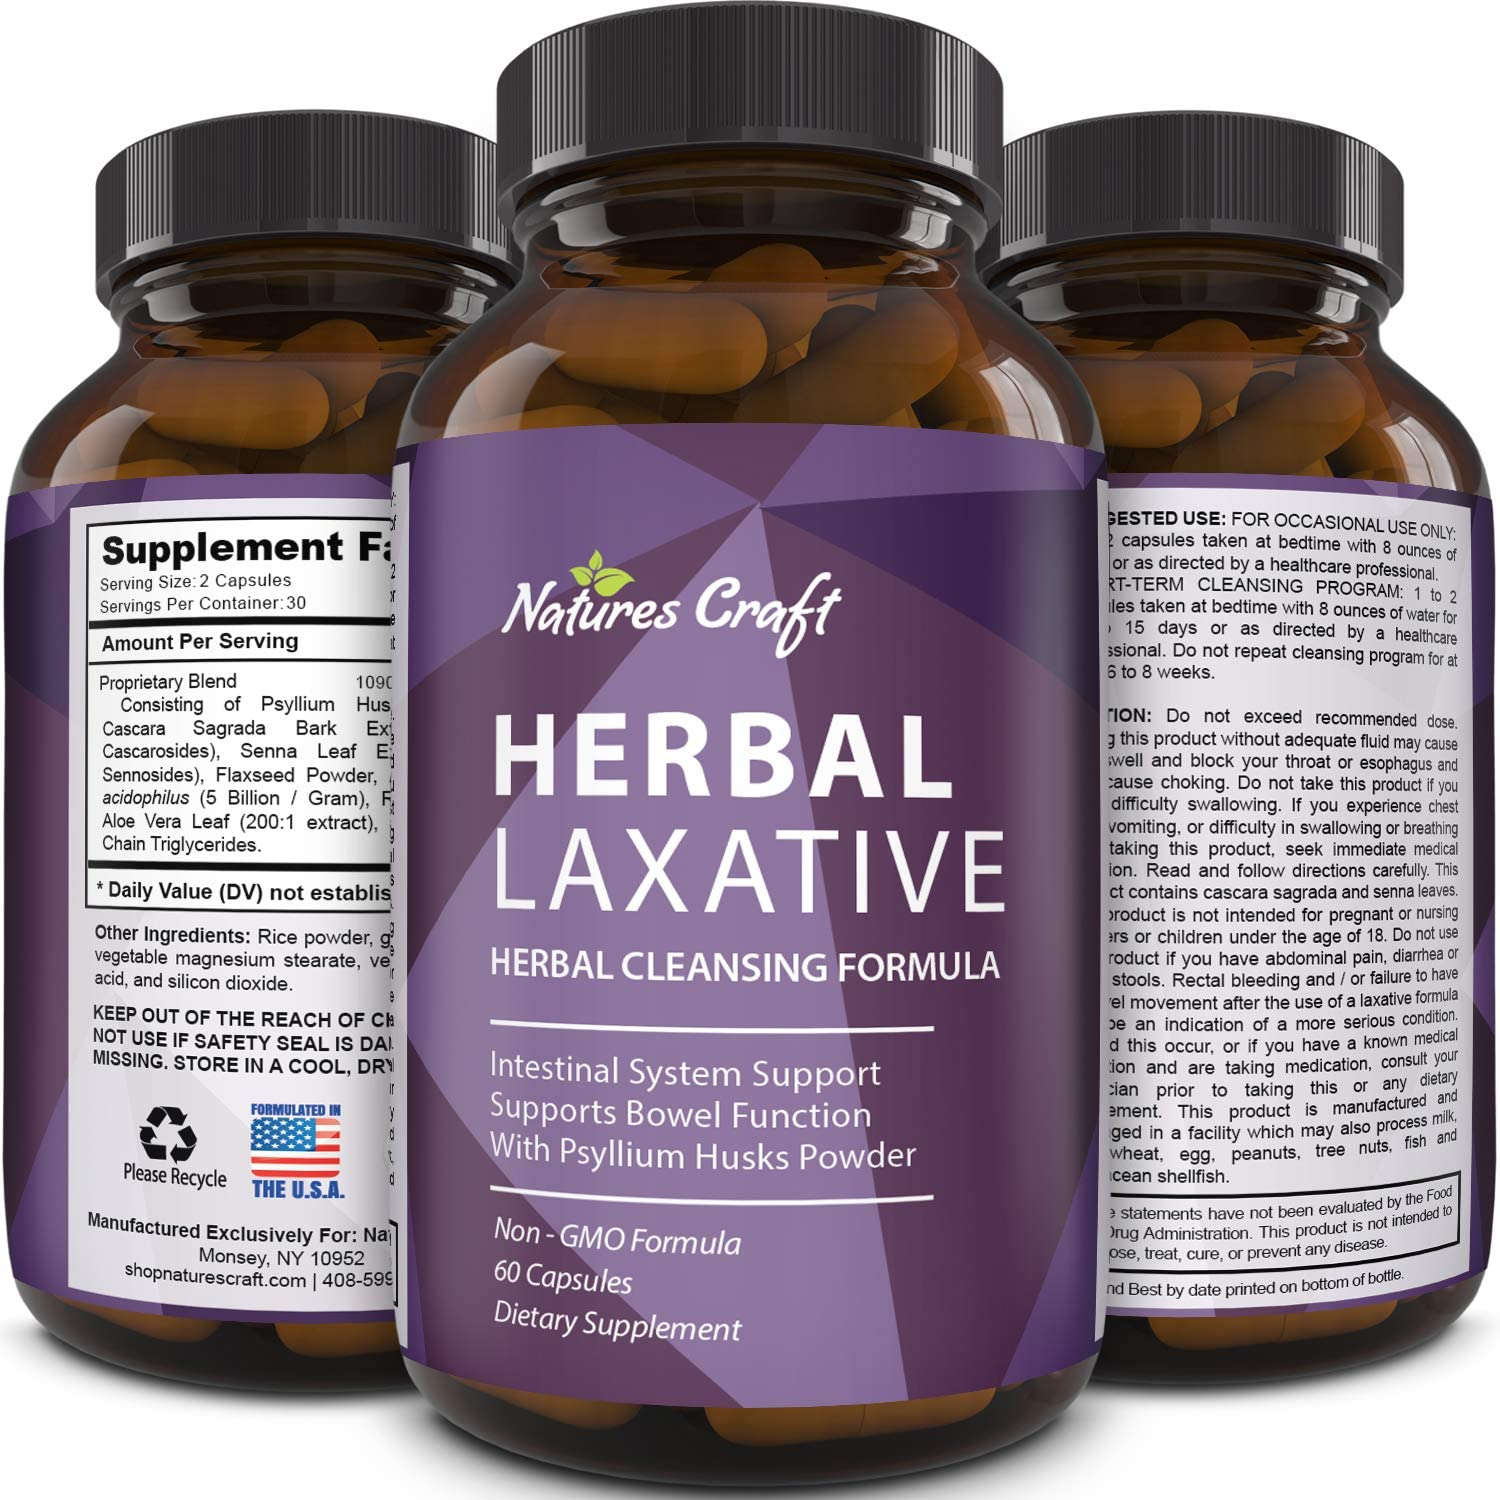 Natures Craft s Herbal Laxative Capsules with Probiotics Natural Colon Detox Digestive Support System Clean Psyllium Husk Powder Senna Leaf Cascara Sagrada Triple Herb Cleanse Pills